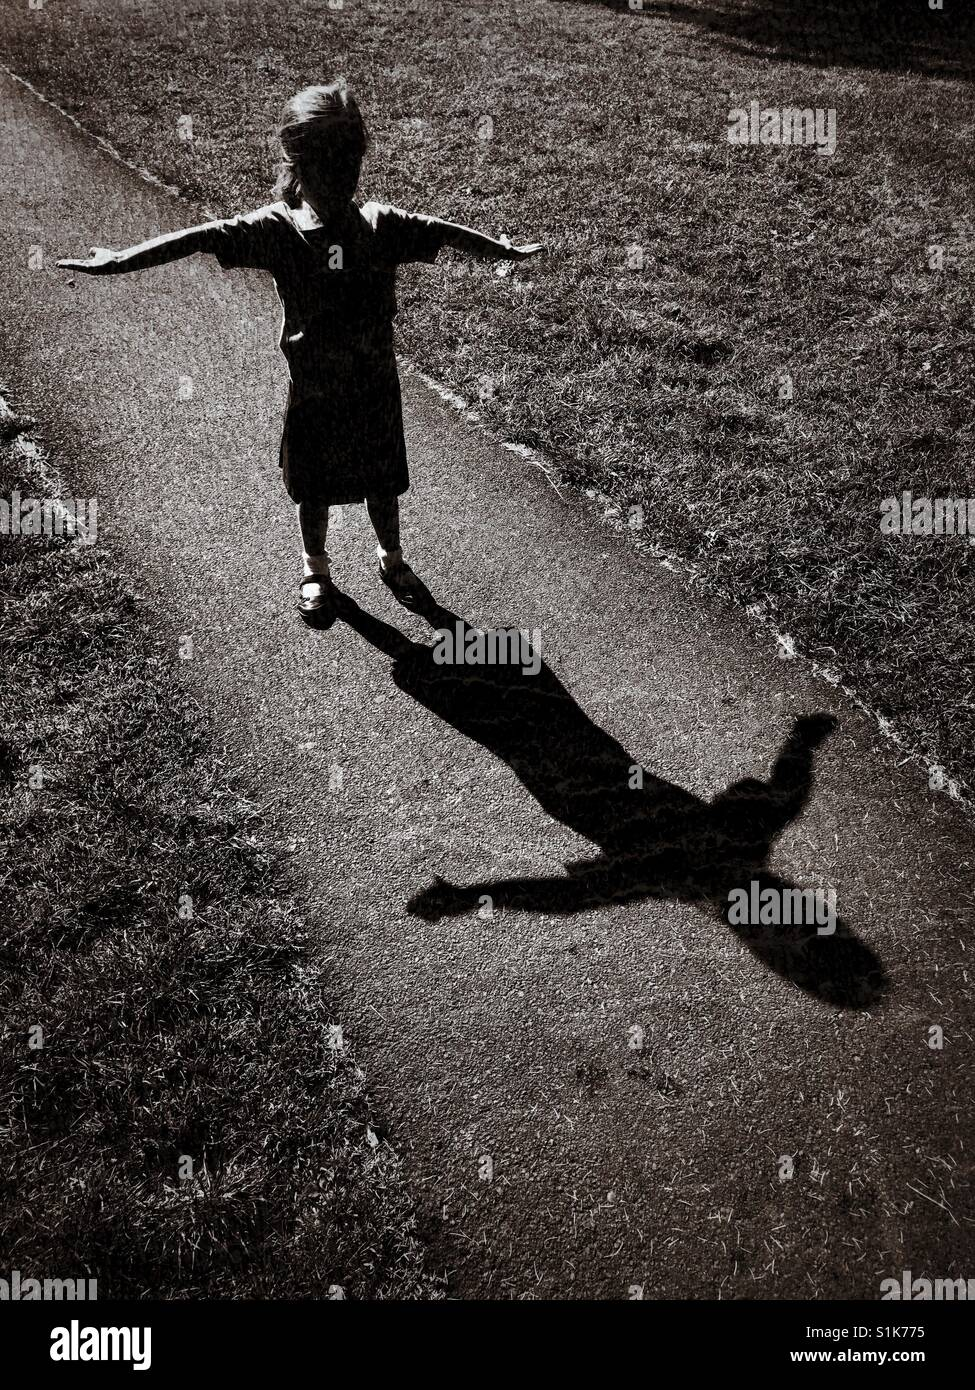 The shadow of a 5 year old child as she raises her arms and tries to create a 't' shape. A grunge effect - Stock Image